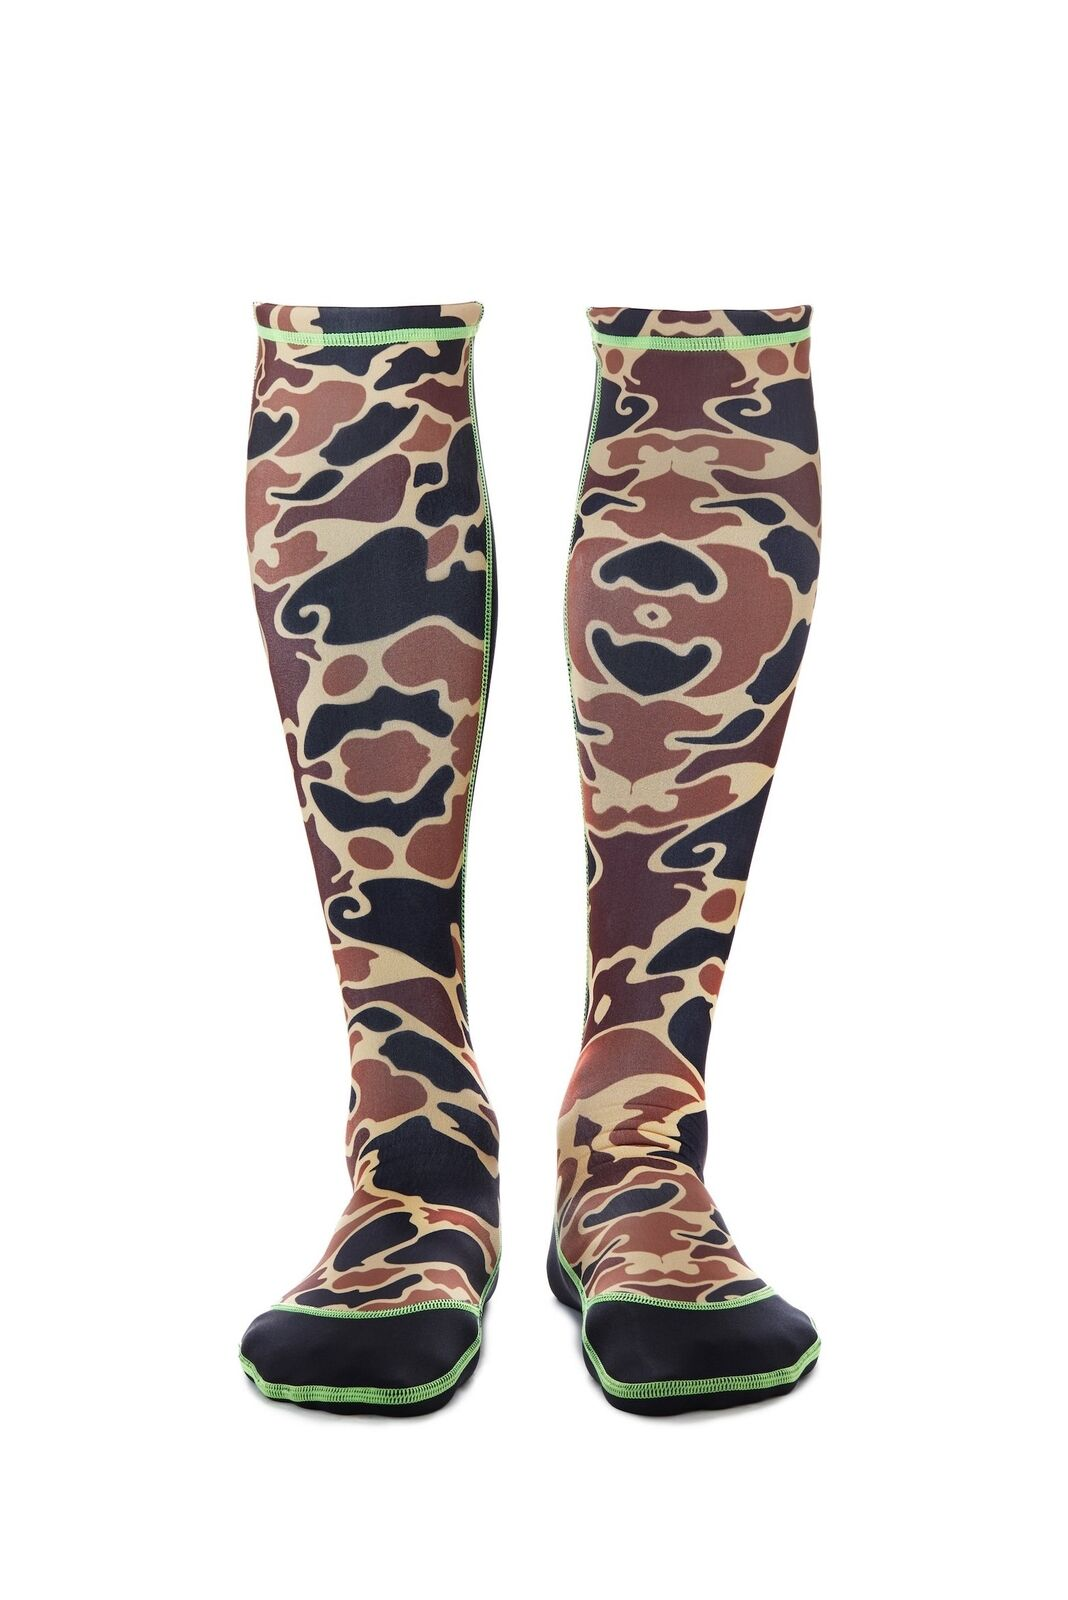 Neoprene Core Hunting//Fishing Socks Designed or Insulated WETSOX Wader Sox 1MM